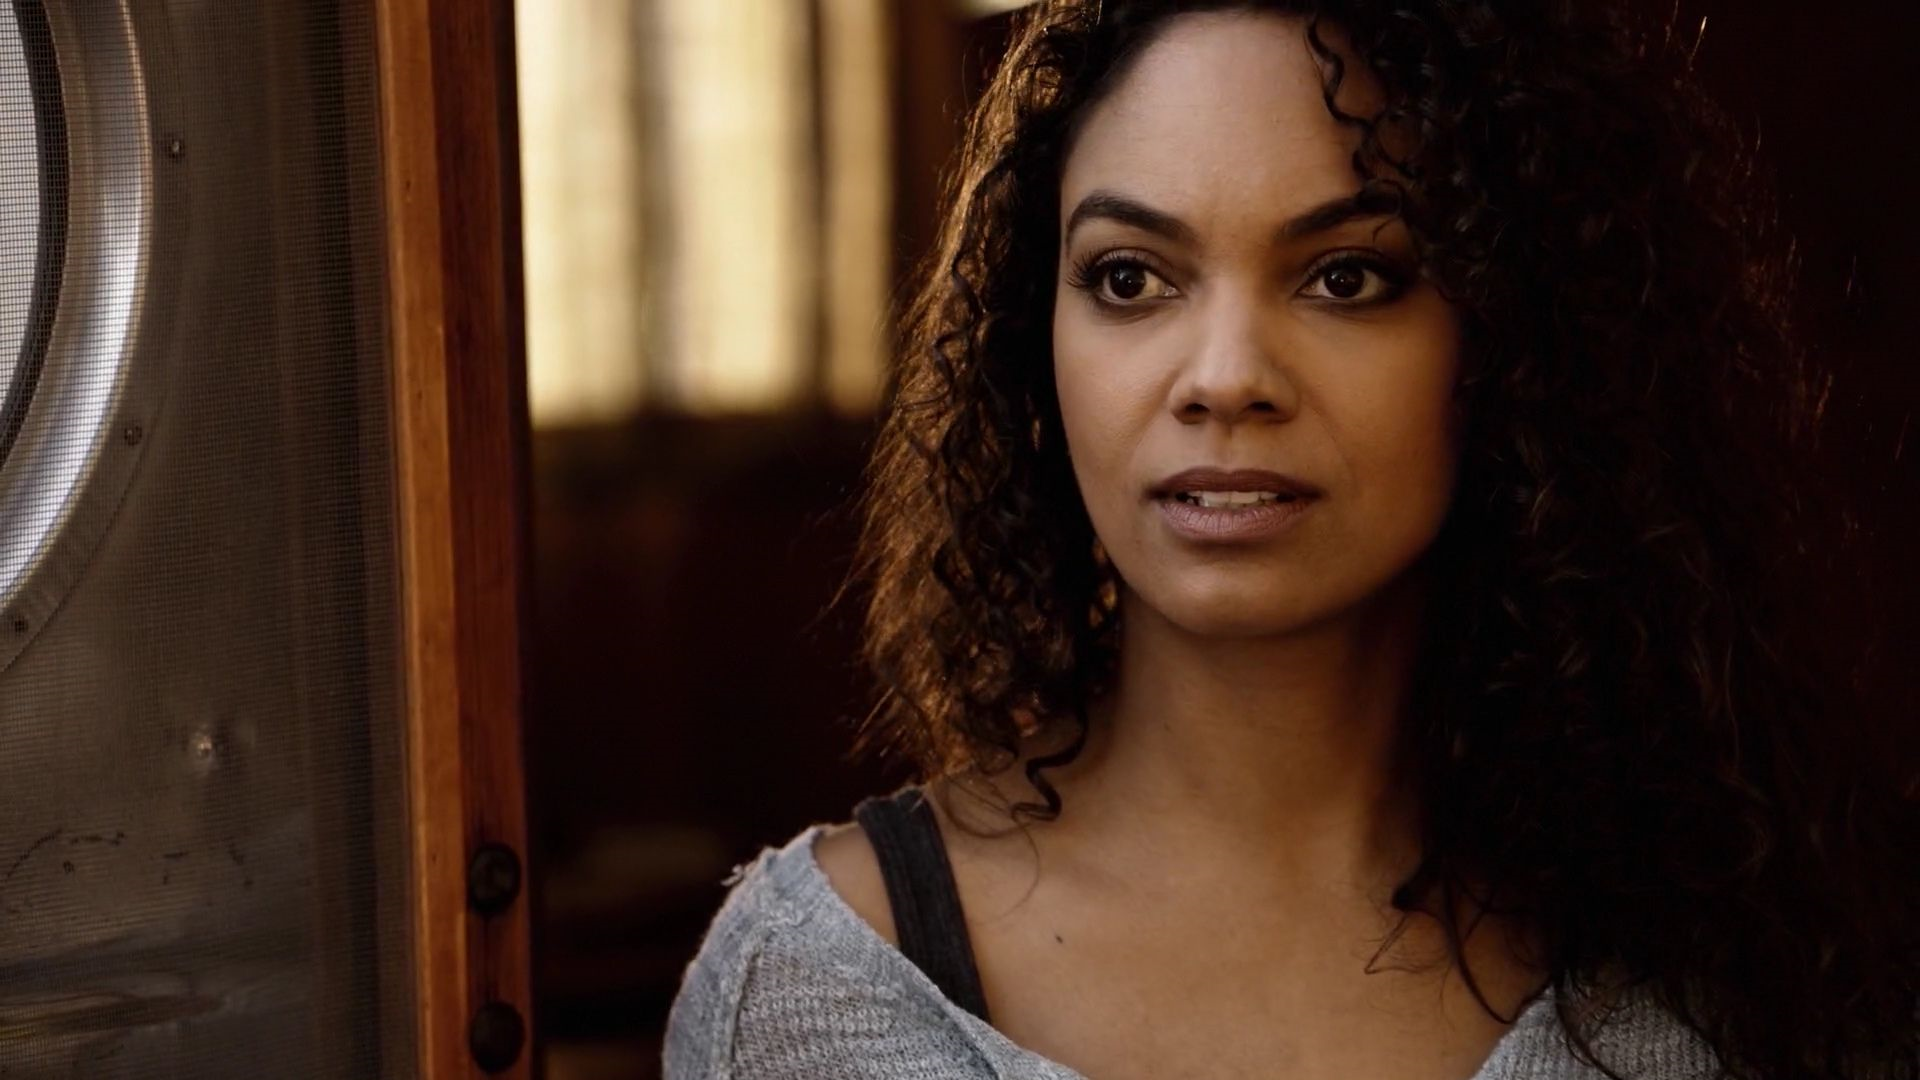 Jenny Mills | SleepyHollow Wiki | FANDOM powered by Wikia